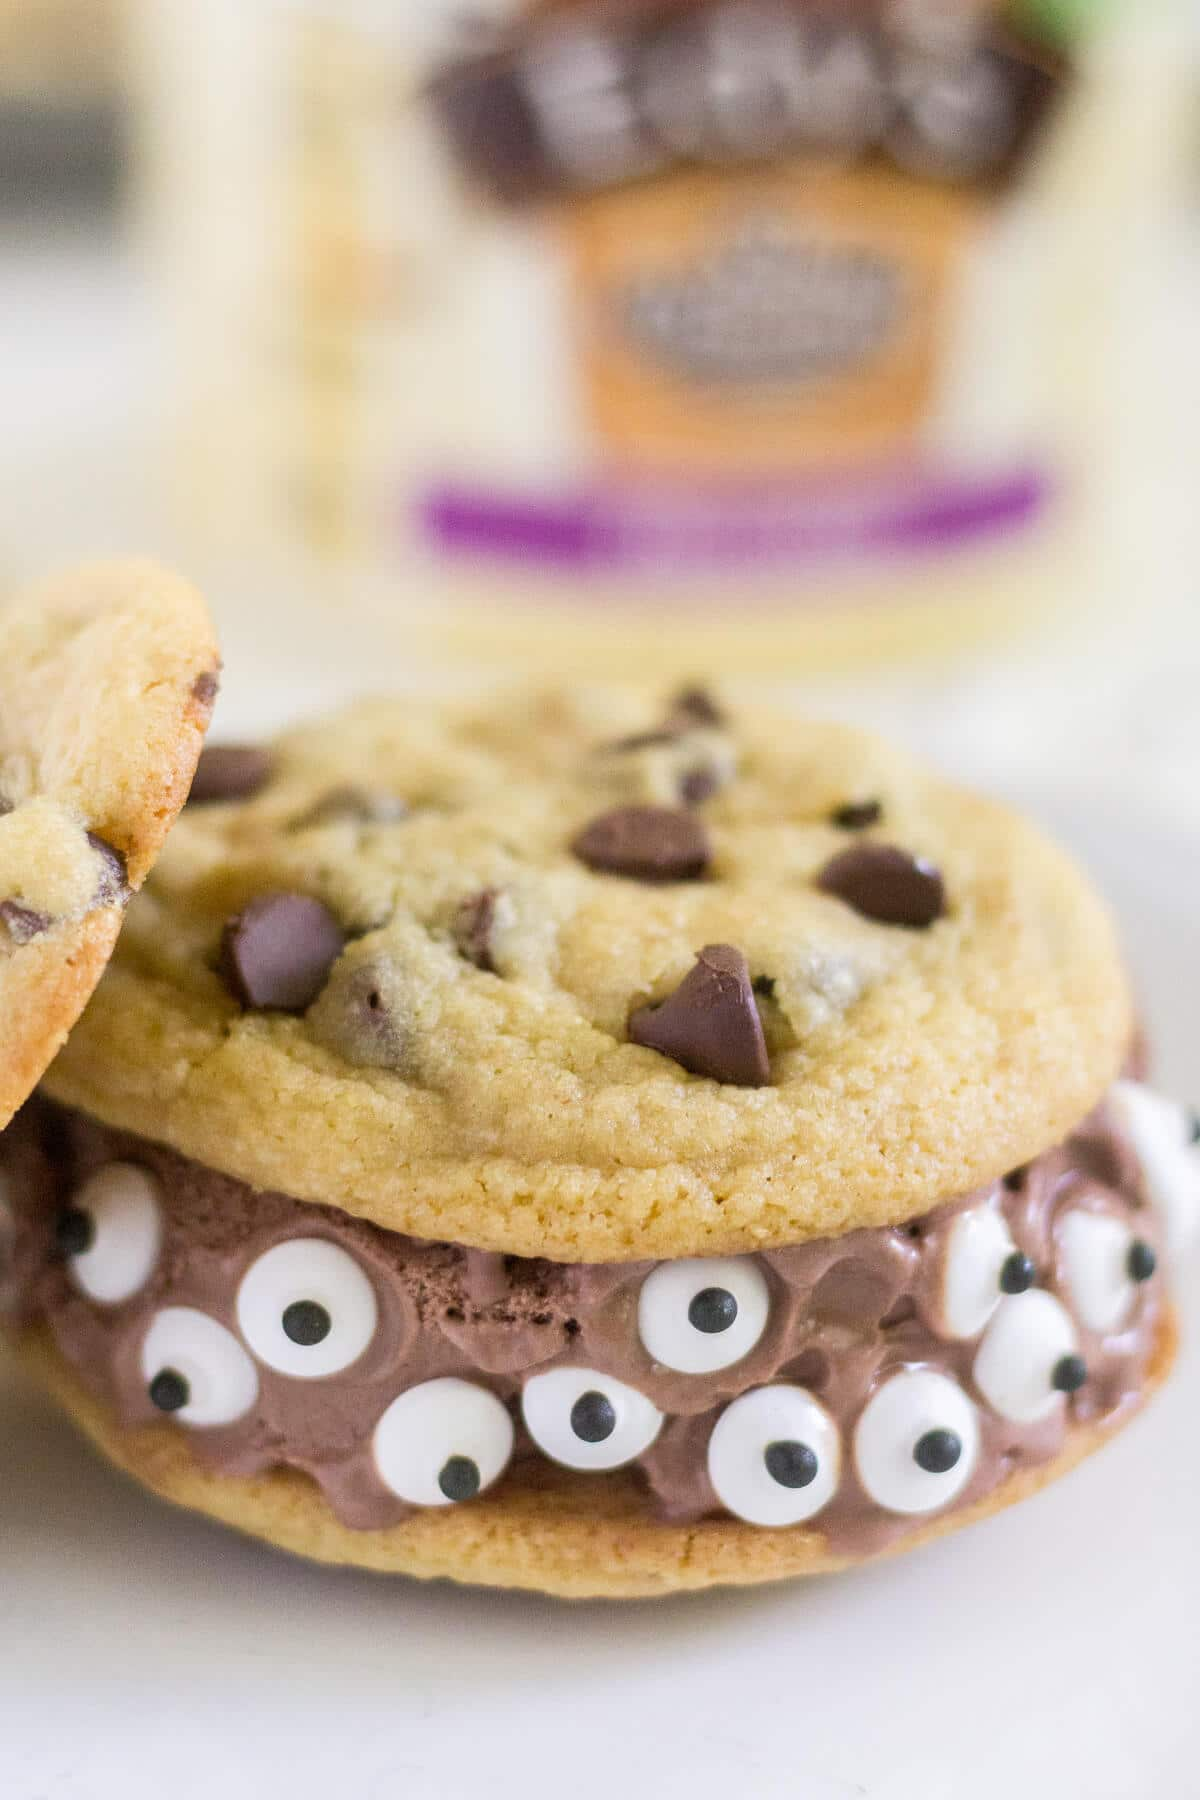 Spooky Monster Ice Cream Sandwiches are an easy Halloween treat for kids and adults alike! This Halloween recipe is a fun dessert for any spooky occasion, from a kid's party to a trick-or-treating night in.